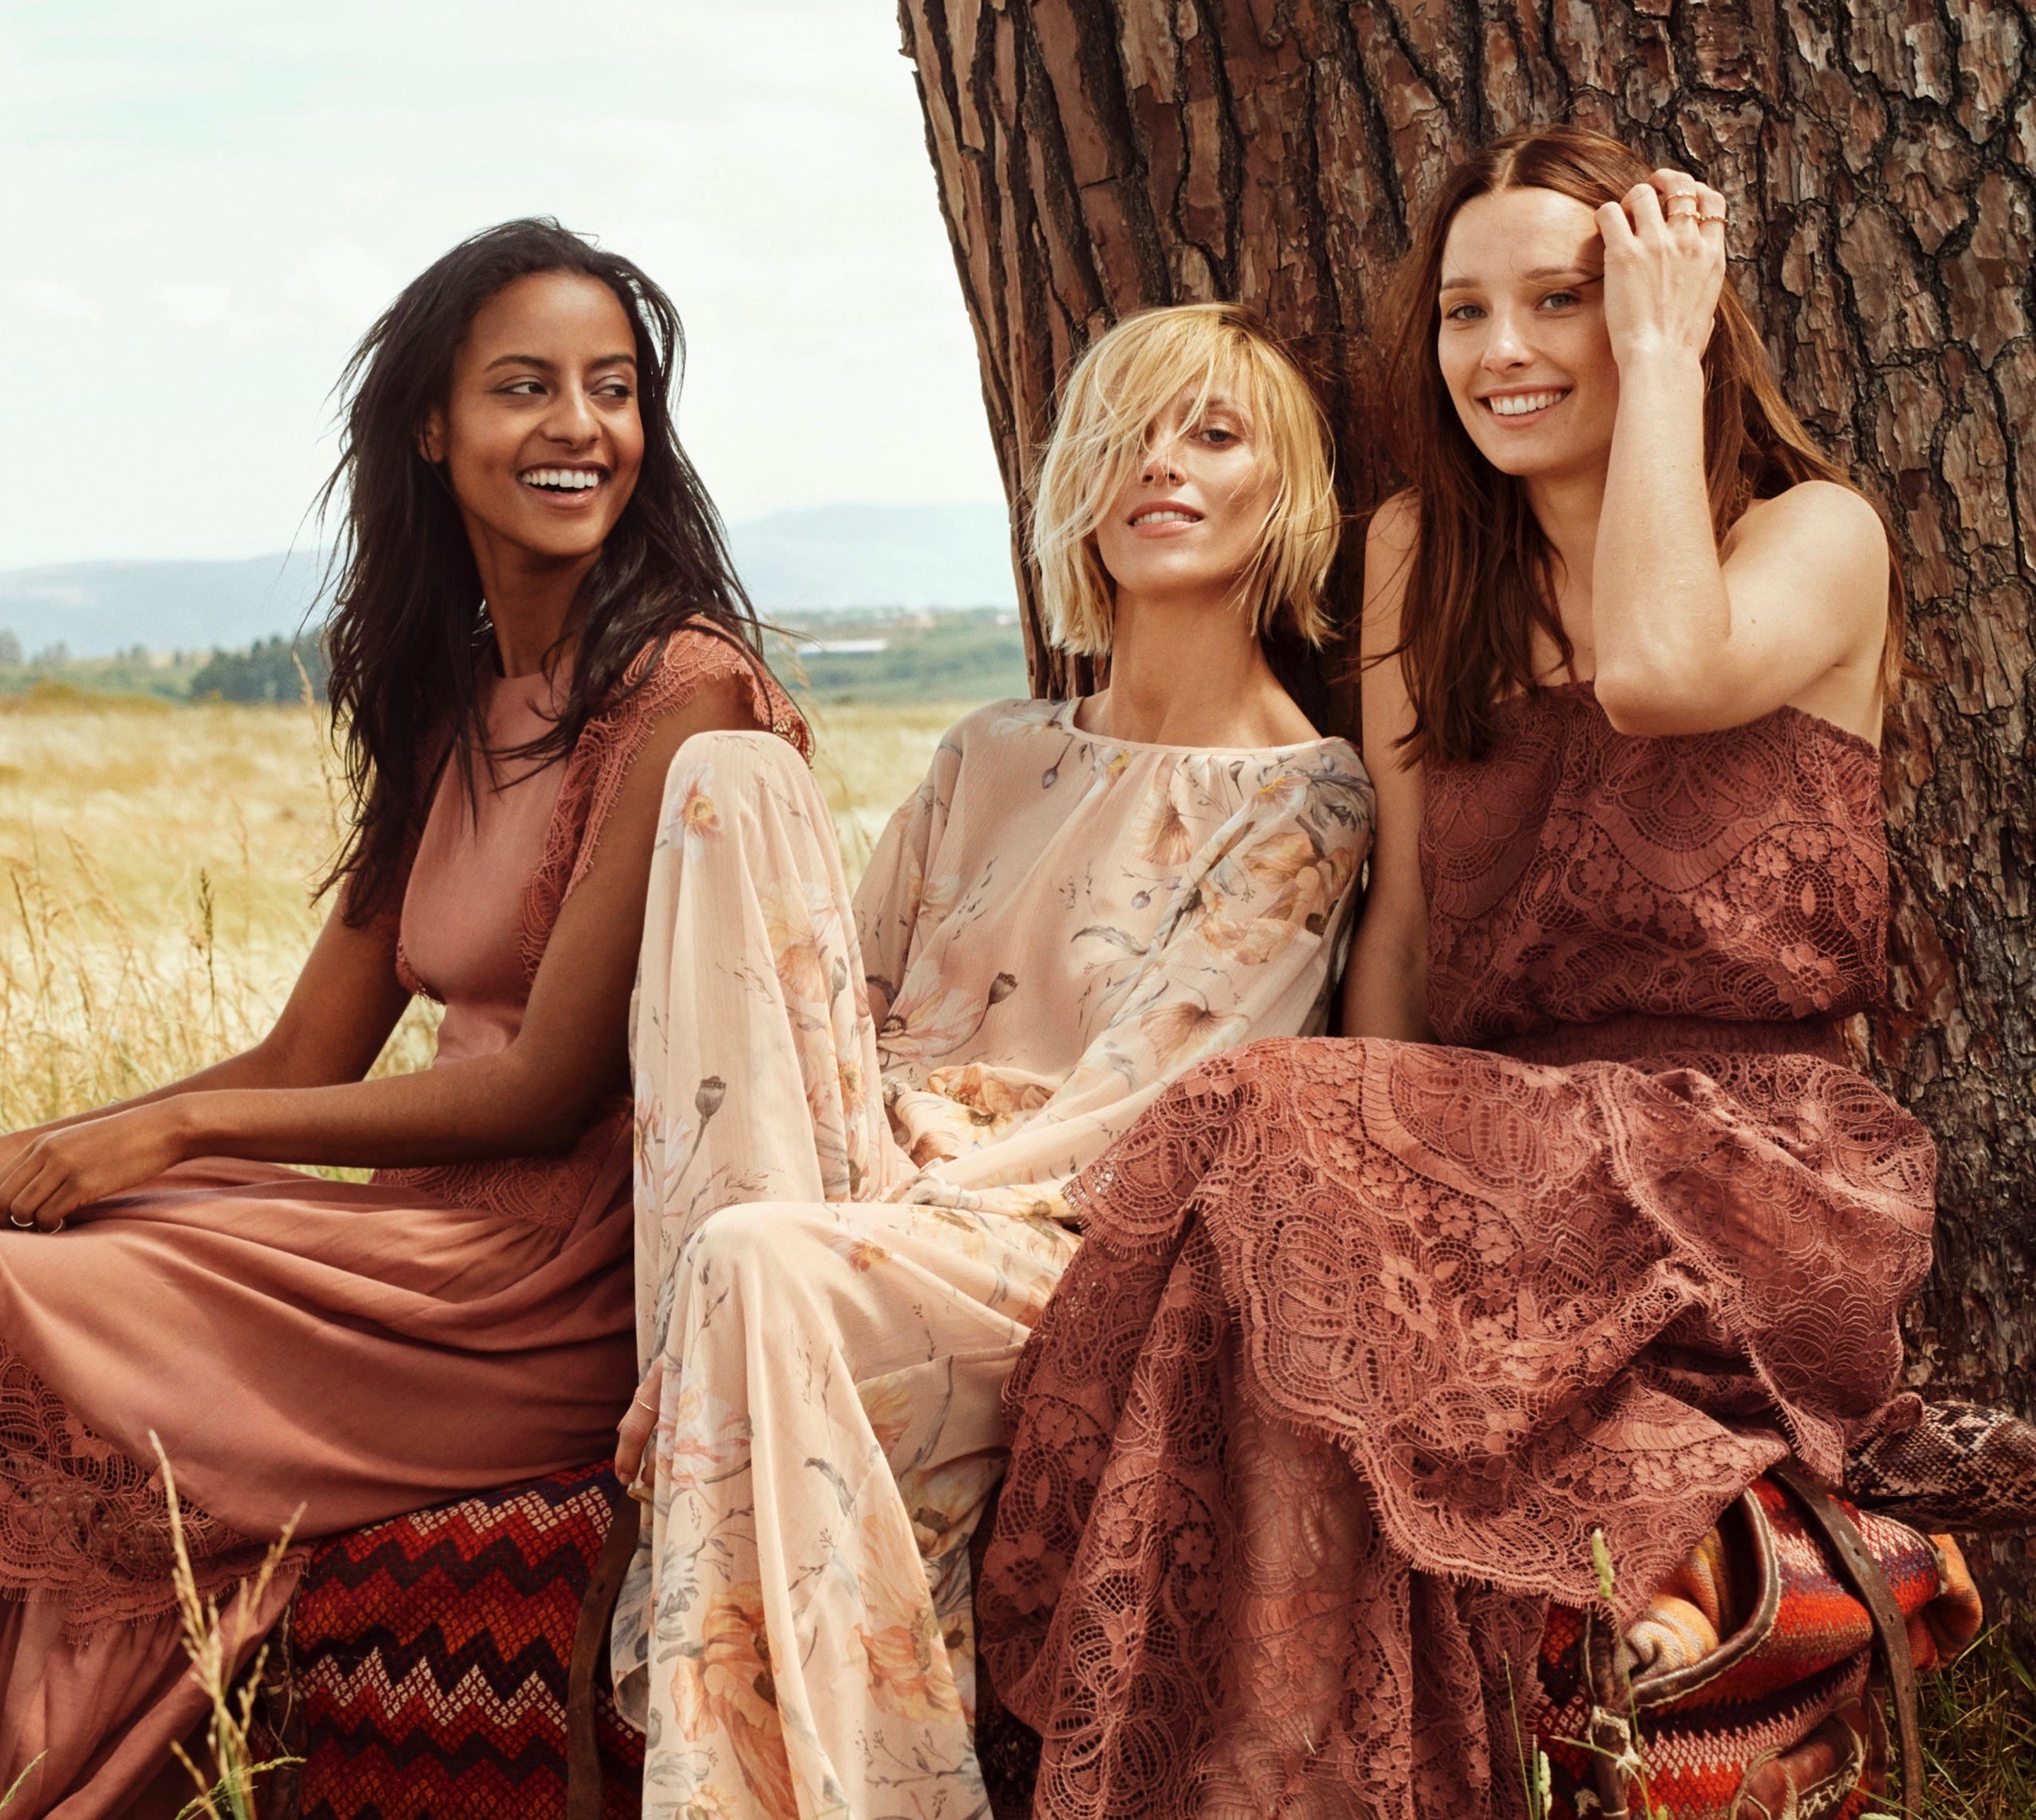 Swedish global fast-fashion retailer H&M's claims of sustainability for its Conscious collection are being questioned by Norway's government as misleading.